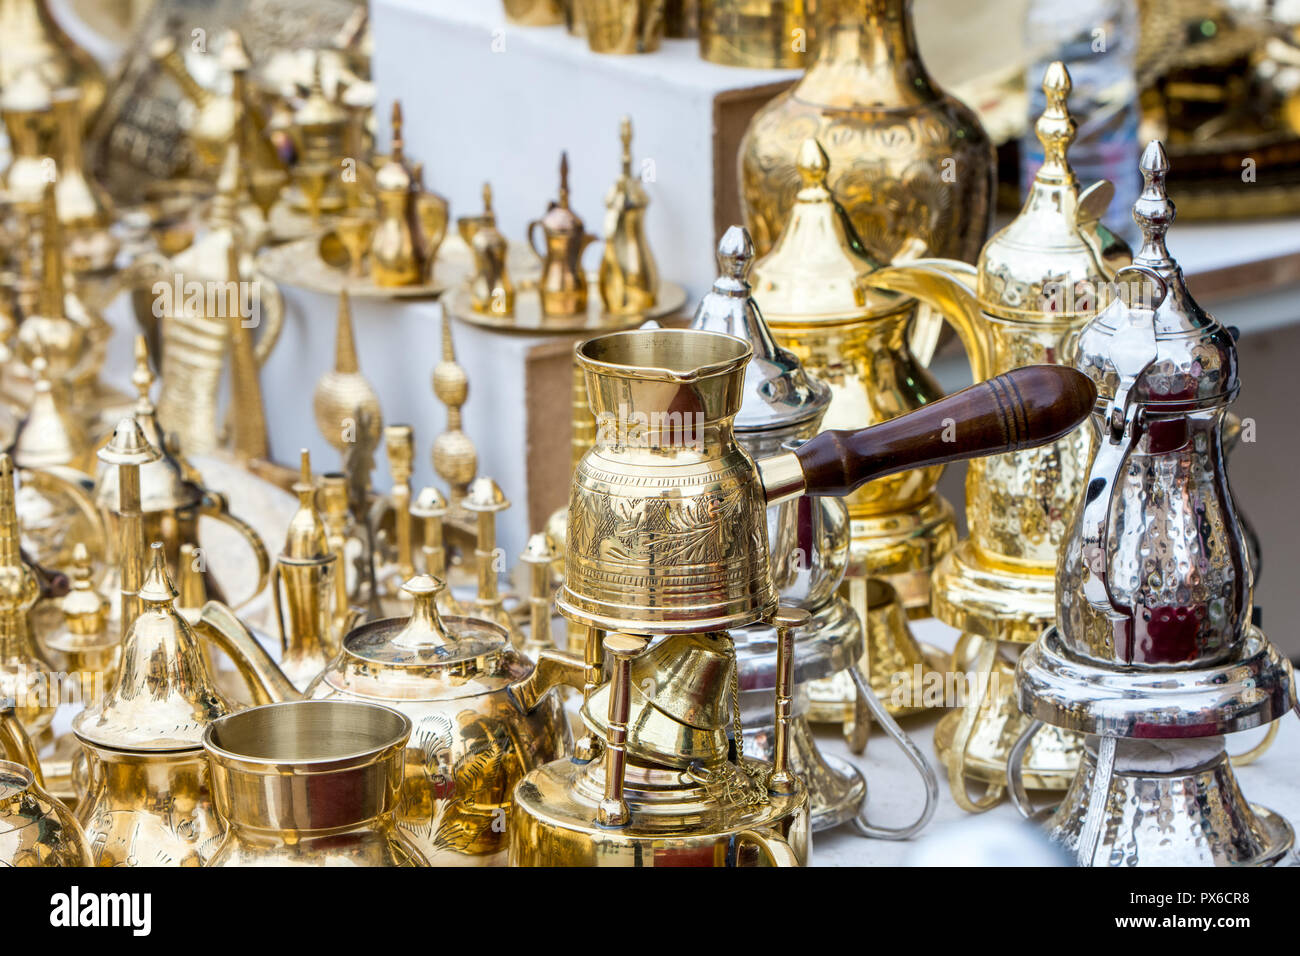 traditional brass utensils in Janadriyah festival essay in Saudi Arabia Stock Photo